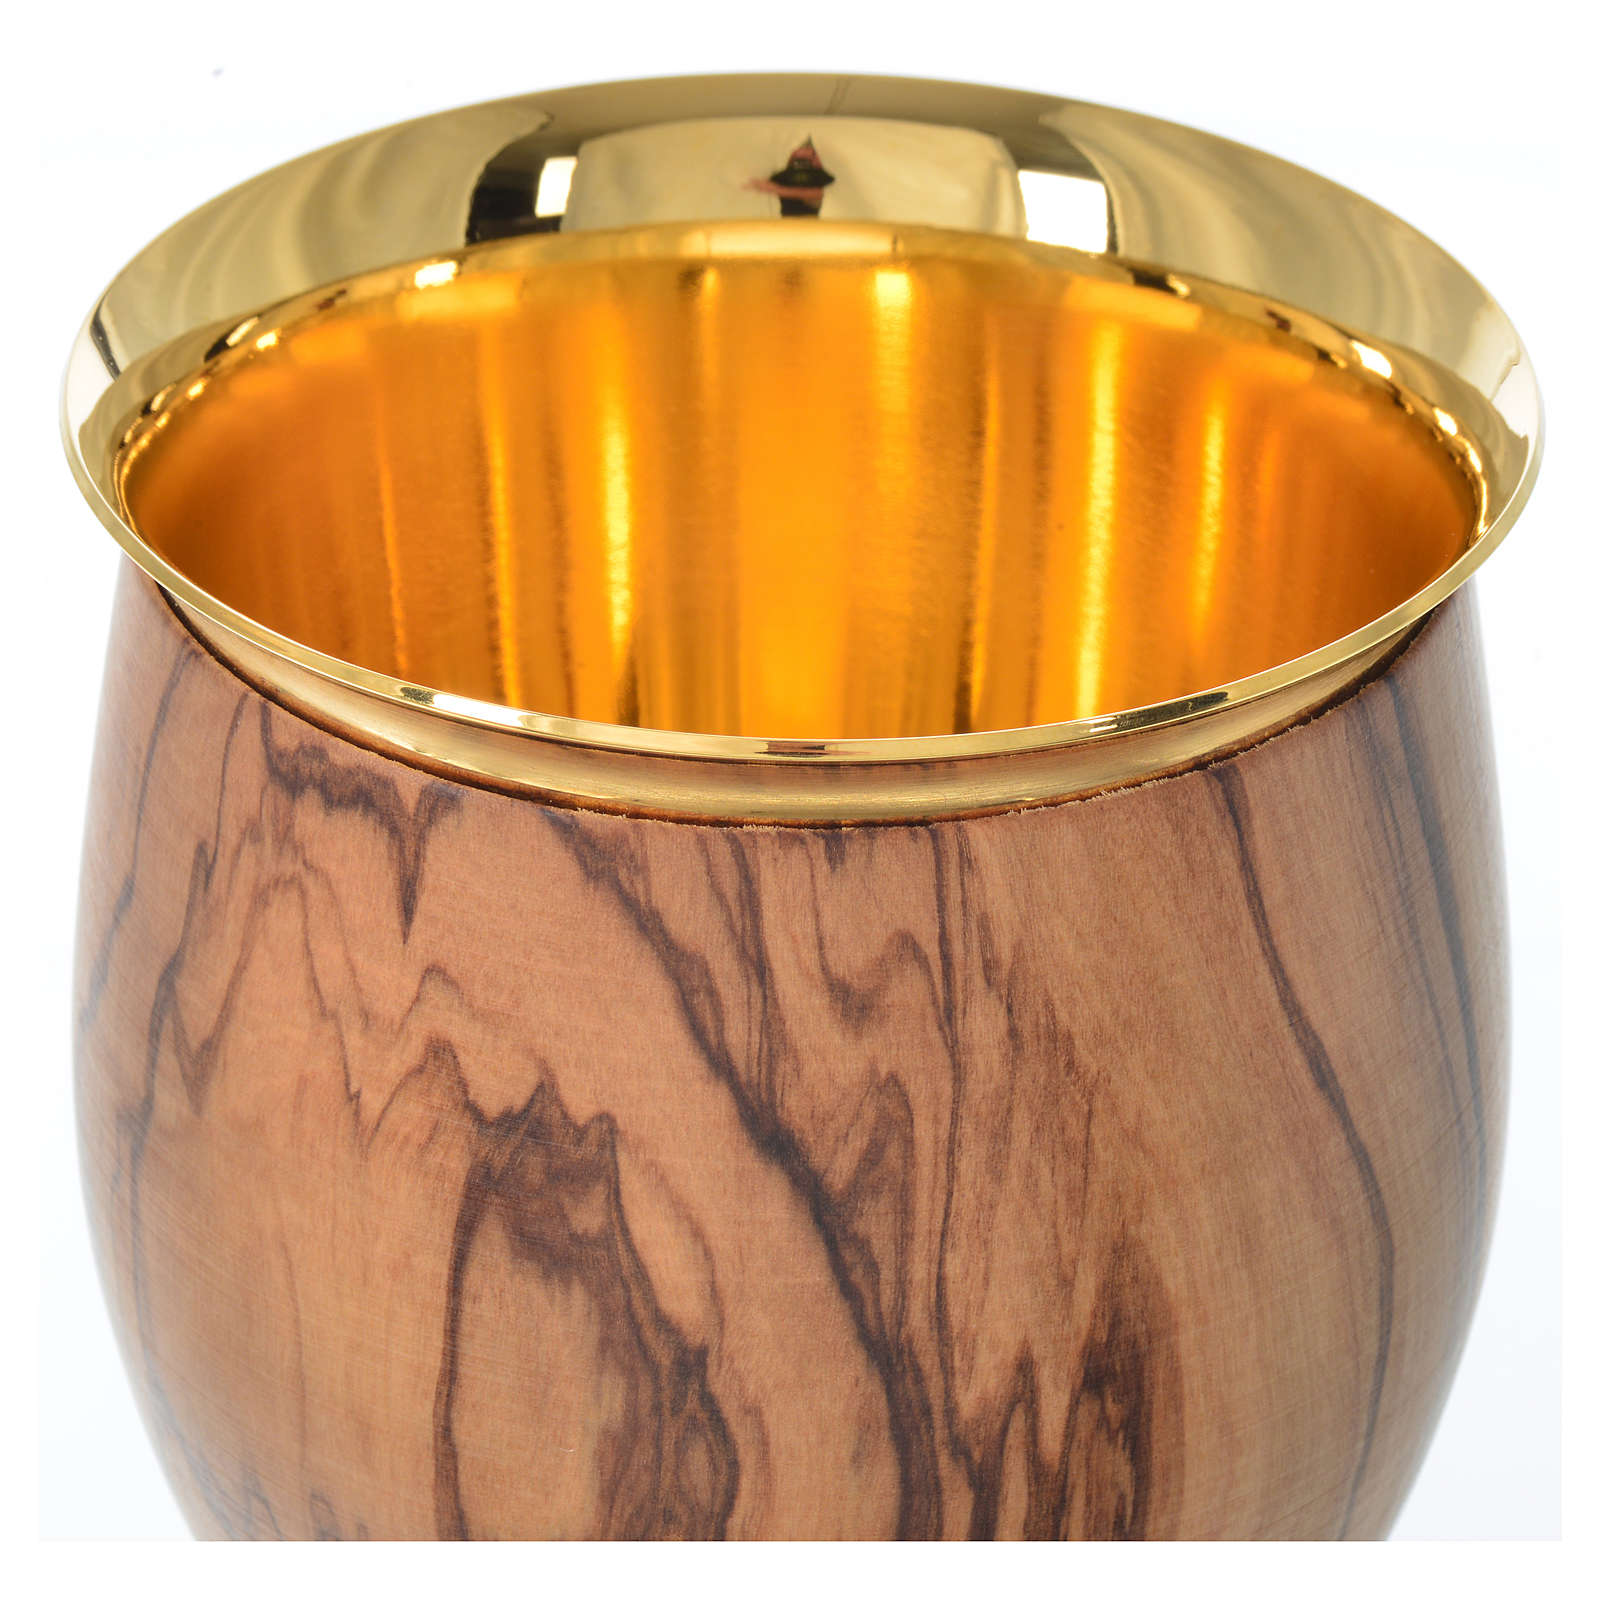 Chalice in Assisi seasoned olive wood, thin cup, 18.5cm diameter 4